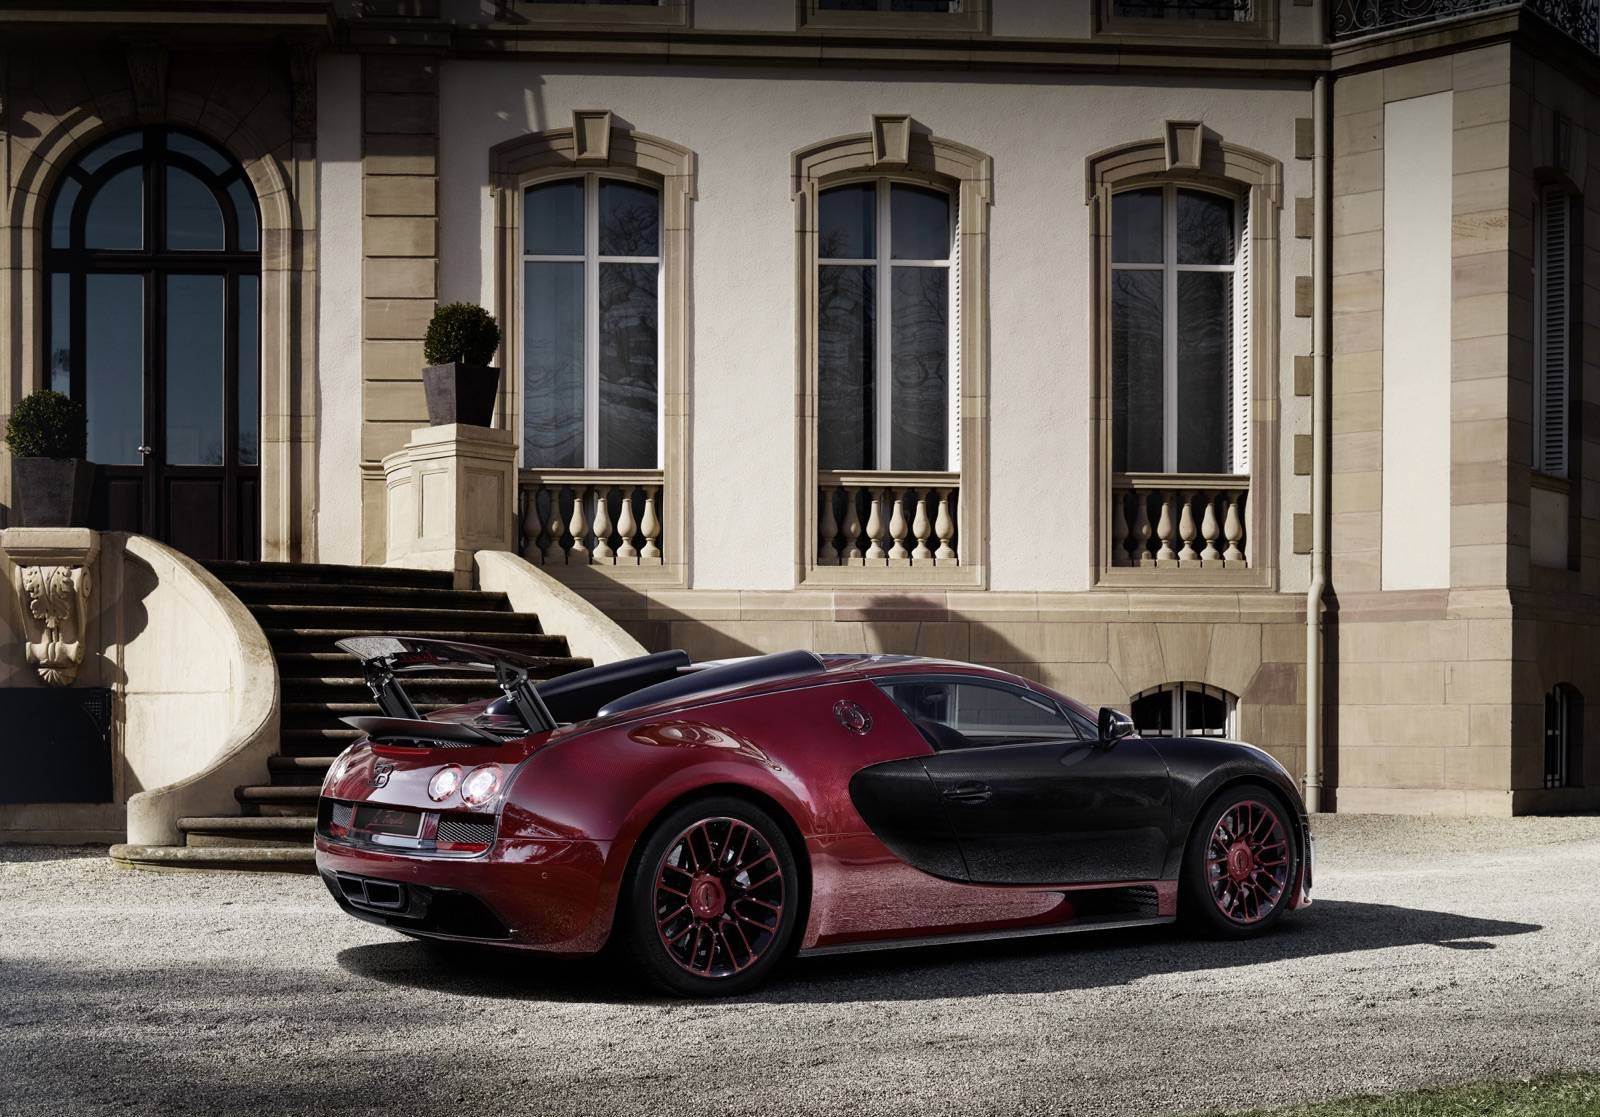 2019 Bugatti Veyron Grand Sport photo - 5